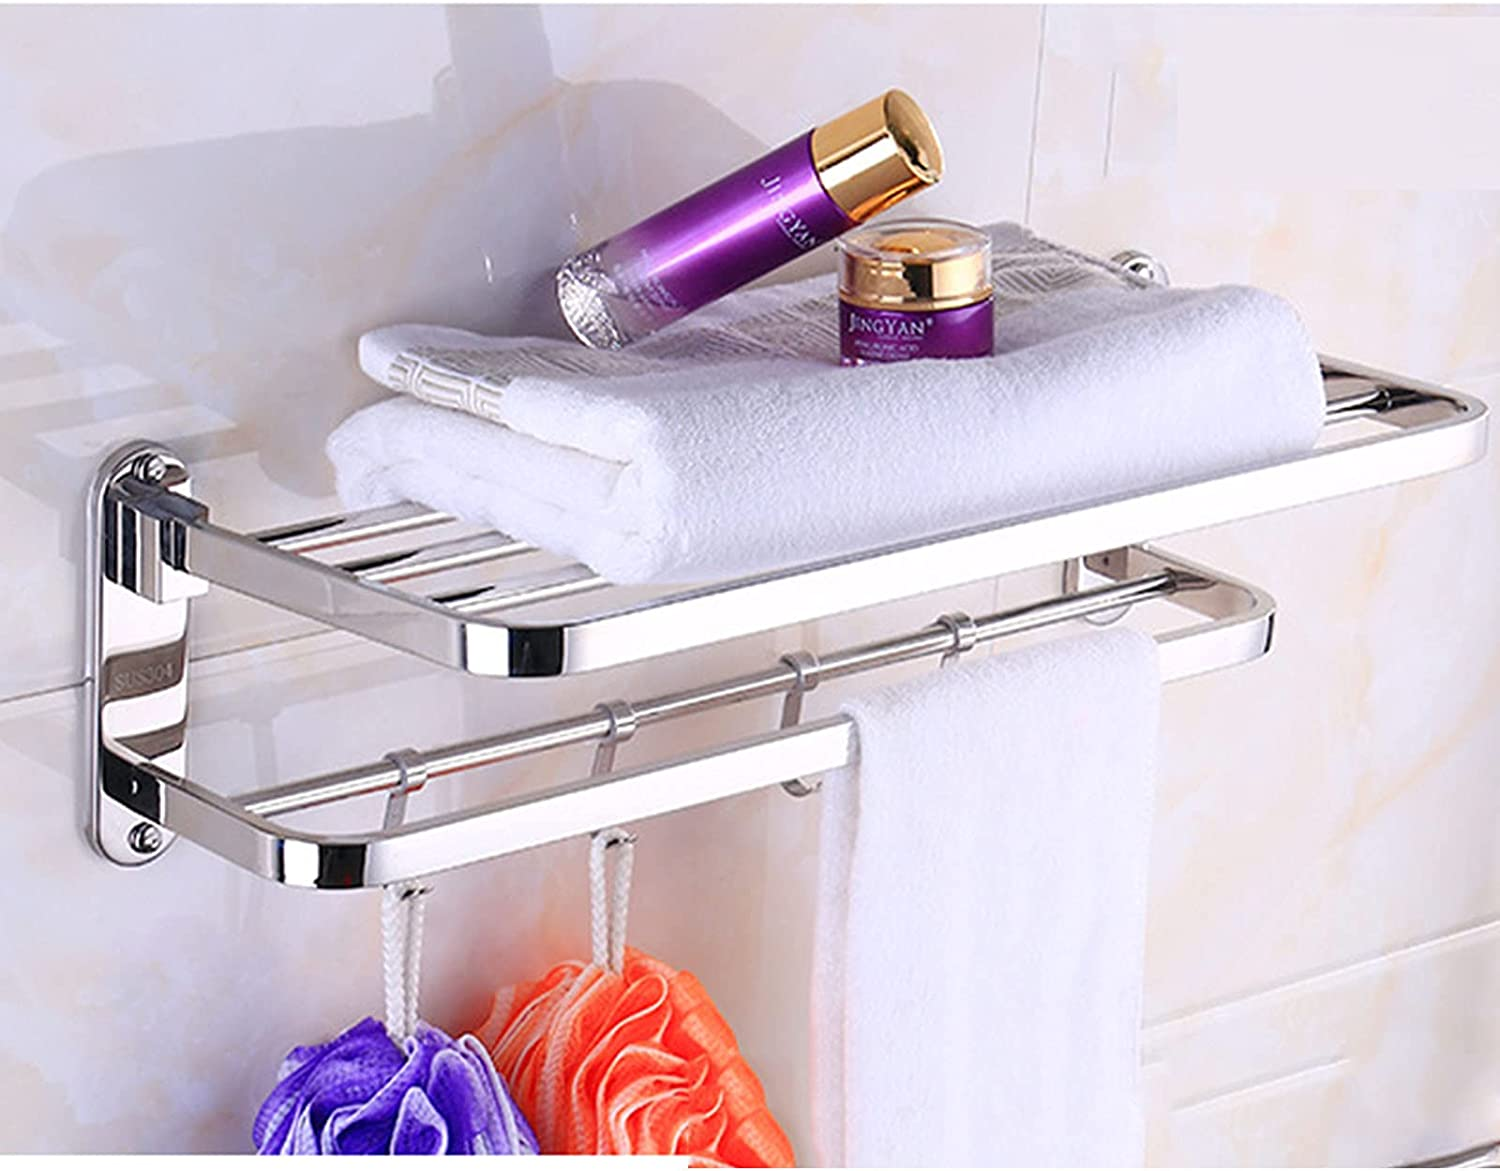 WENHM Limited price SUS 304 Stainless Steel Folding Bath Towel Rack Max 87% OFF Hotel Bat